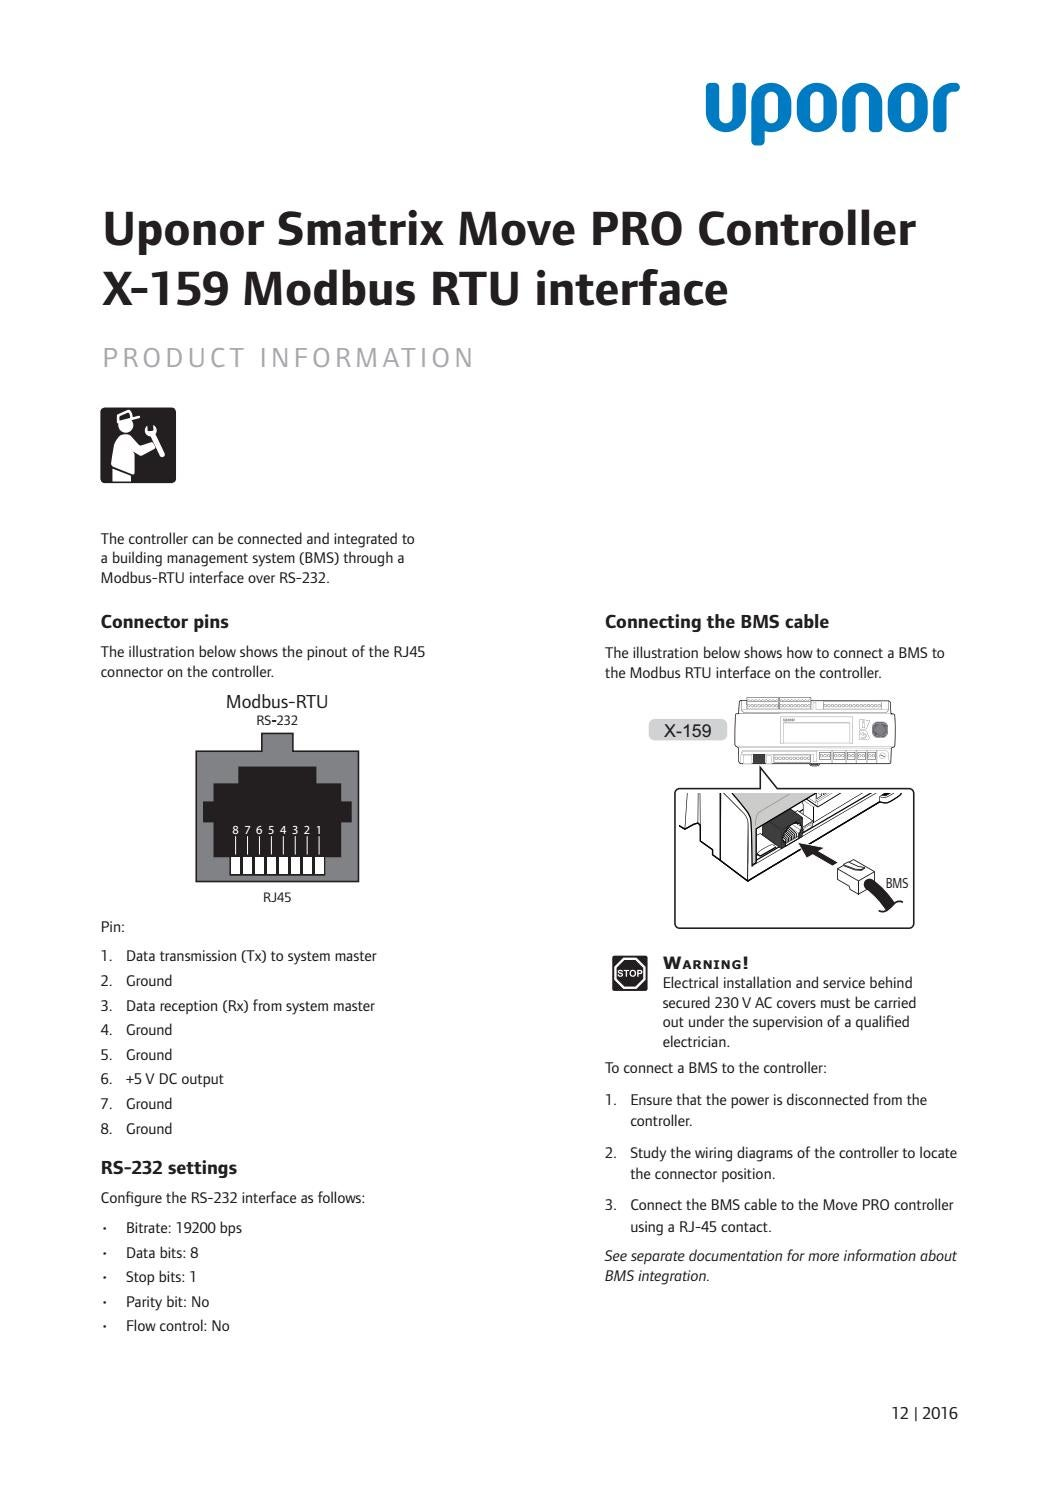 uponor product info smatrix move pro modbus rtu en 1088472 12 2016 by  uponor international - issuu